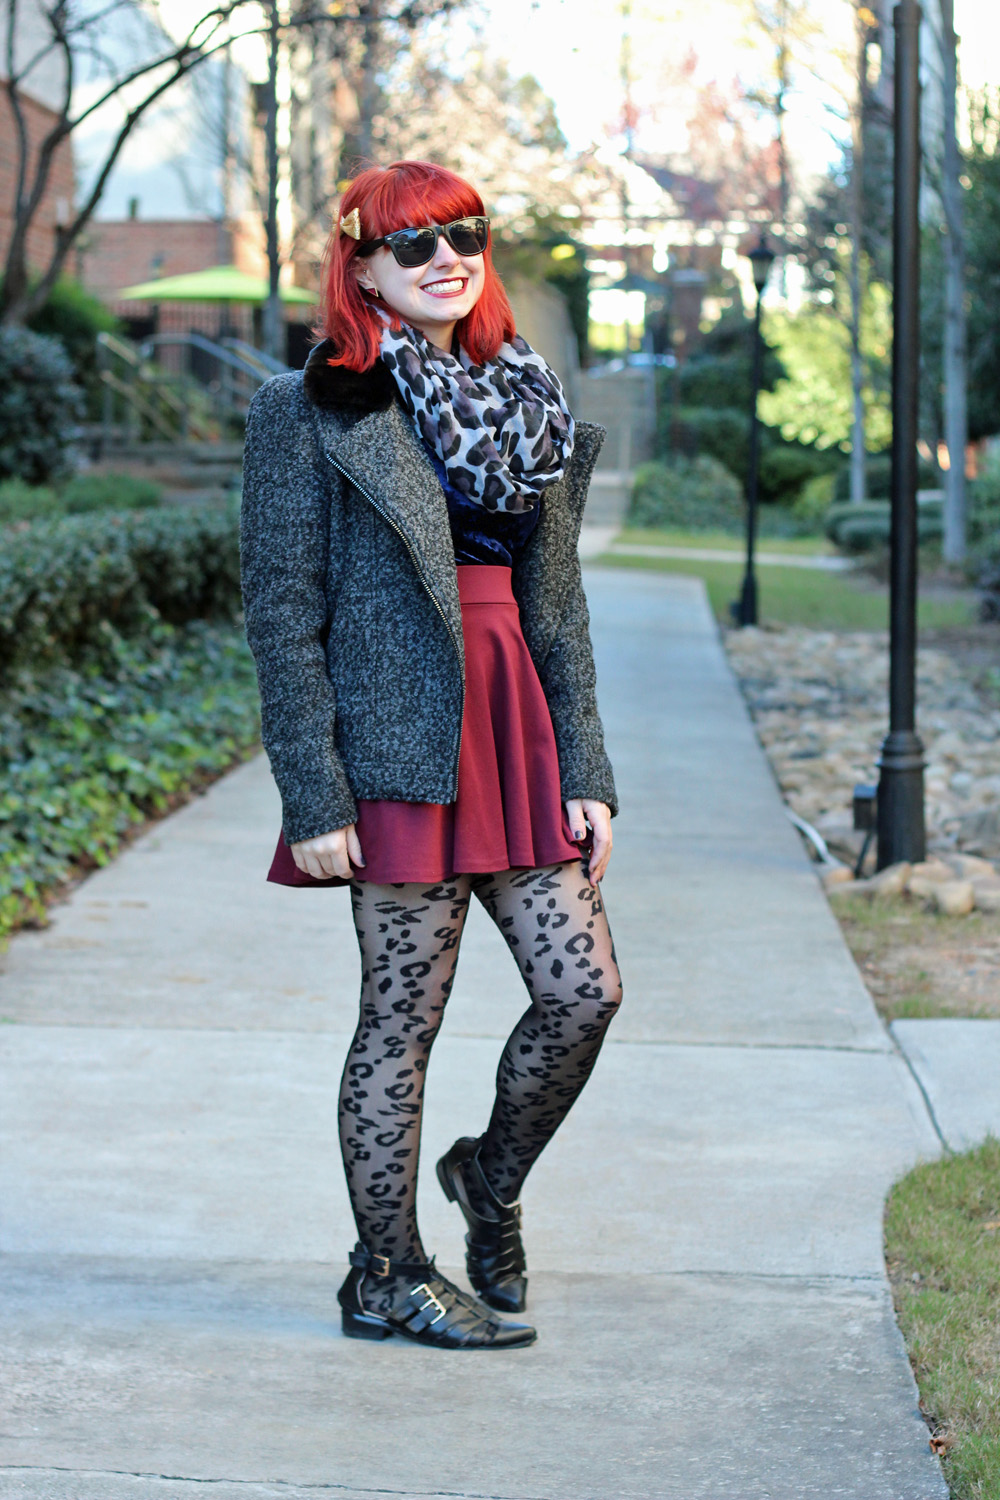 Gray Boucle Coat, Maroon Skater Skirt, Leopard Print Circle Scarf, Sheer Leopard Tights, and Cutout Boots